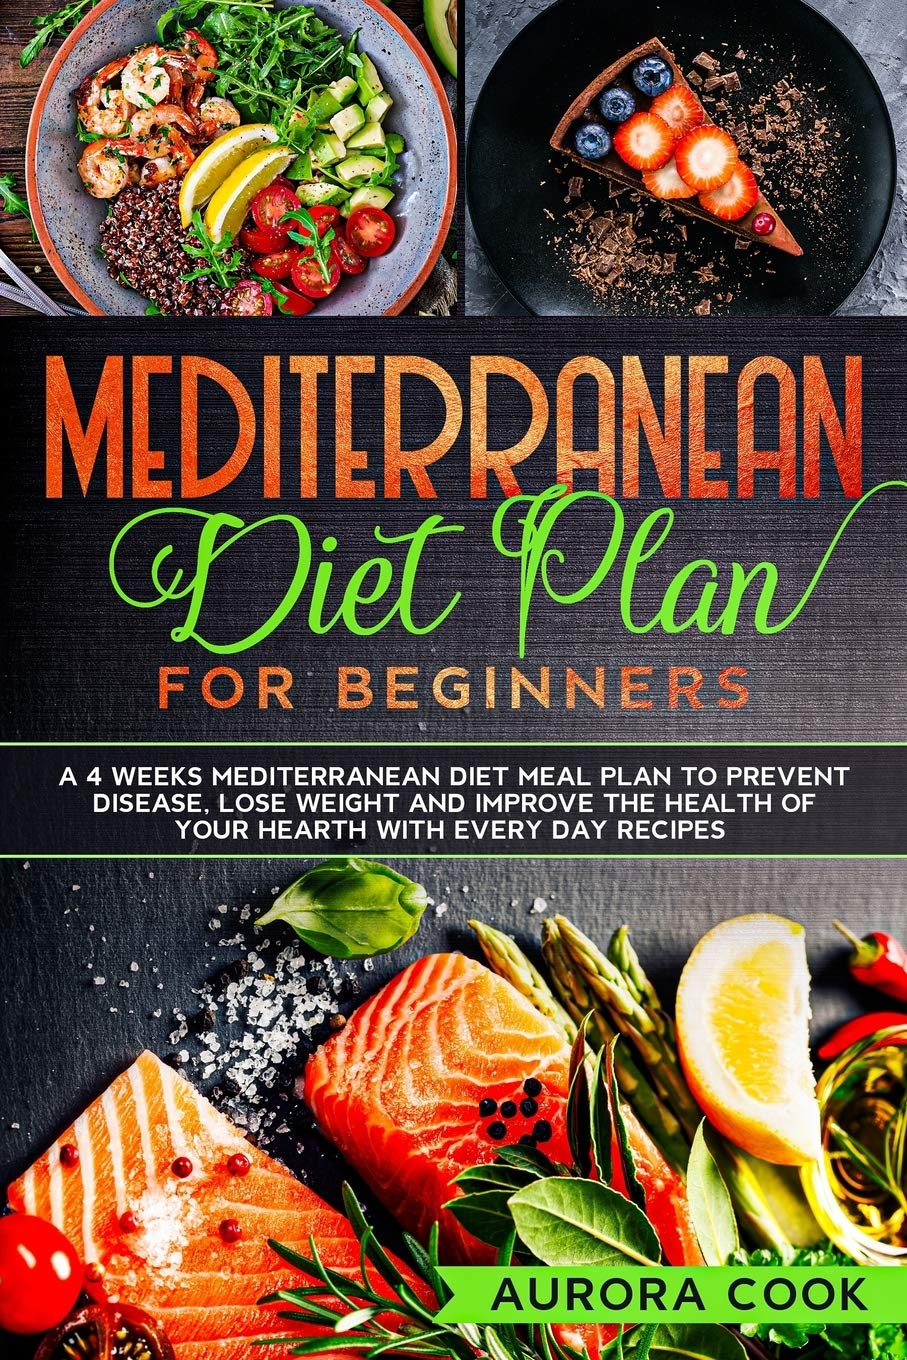 Mediterranean Diet Plan for Beginners: A 4 Weeks Mediterranean Diet Meal Plan to Prevent Disease, Lose Weight and Improve the Health of Your Hearth with Every Day Recipes